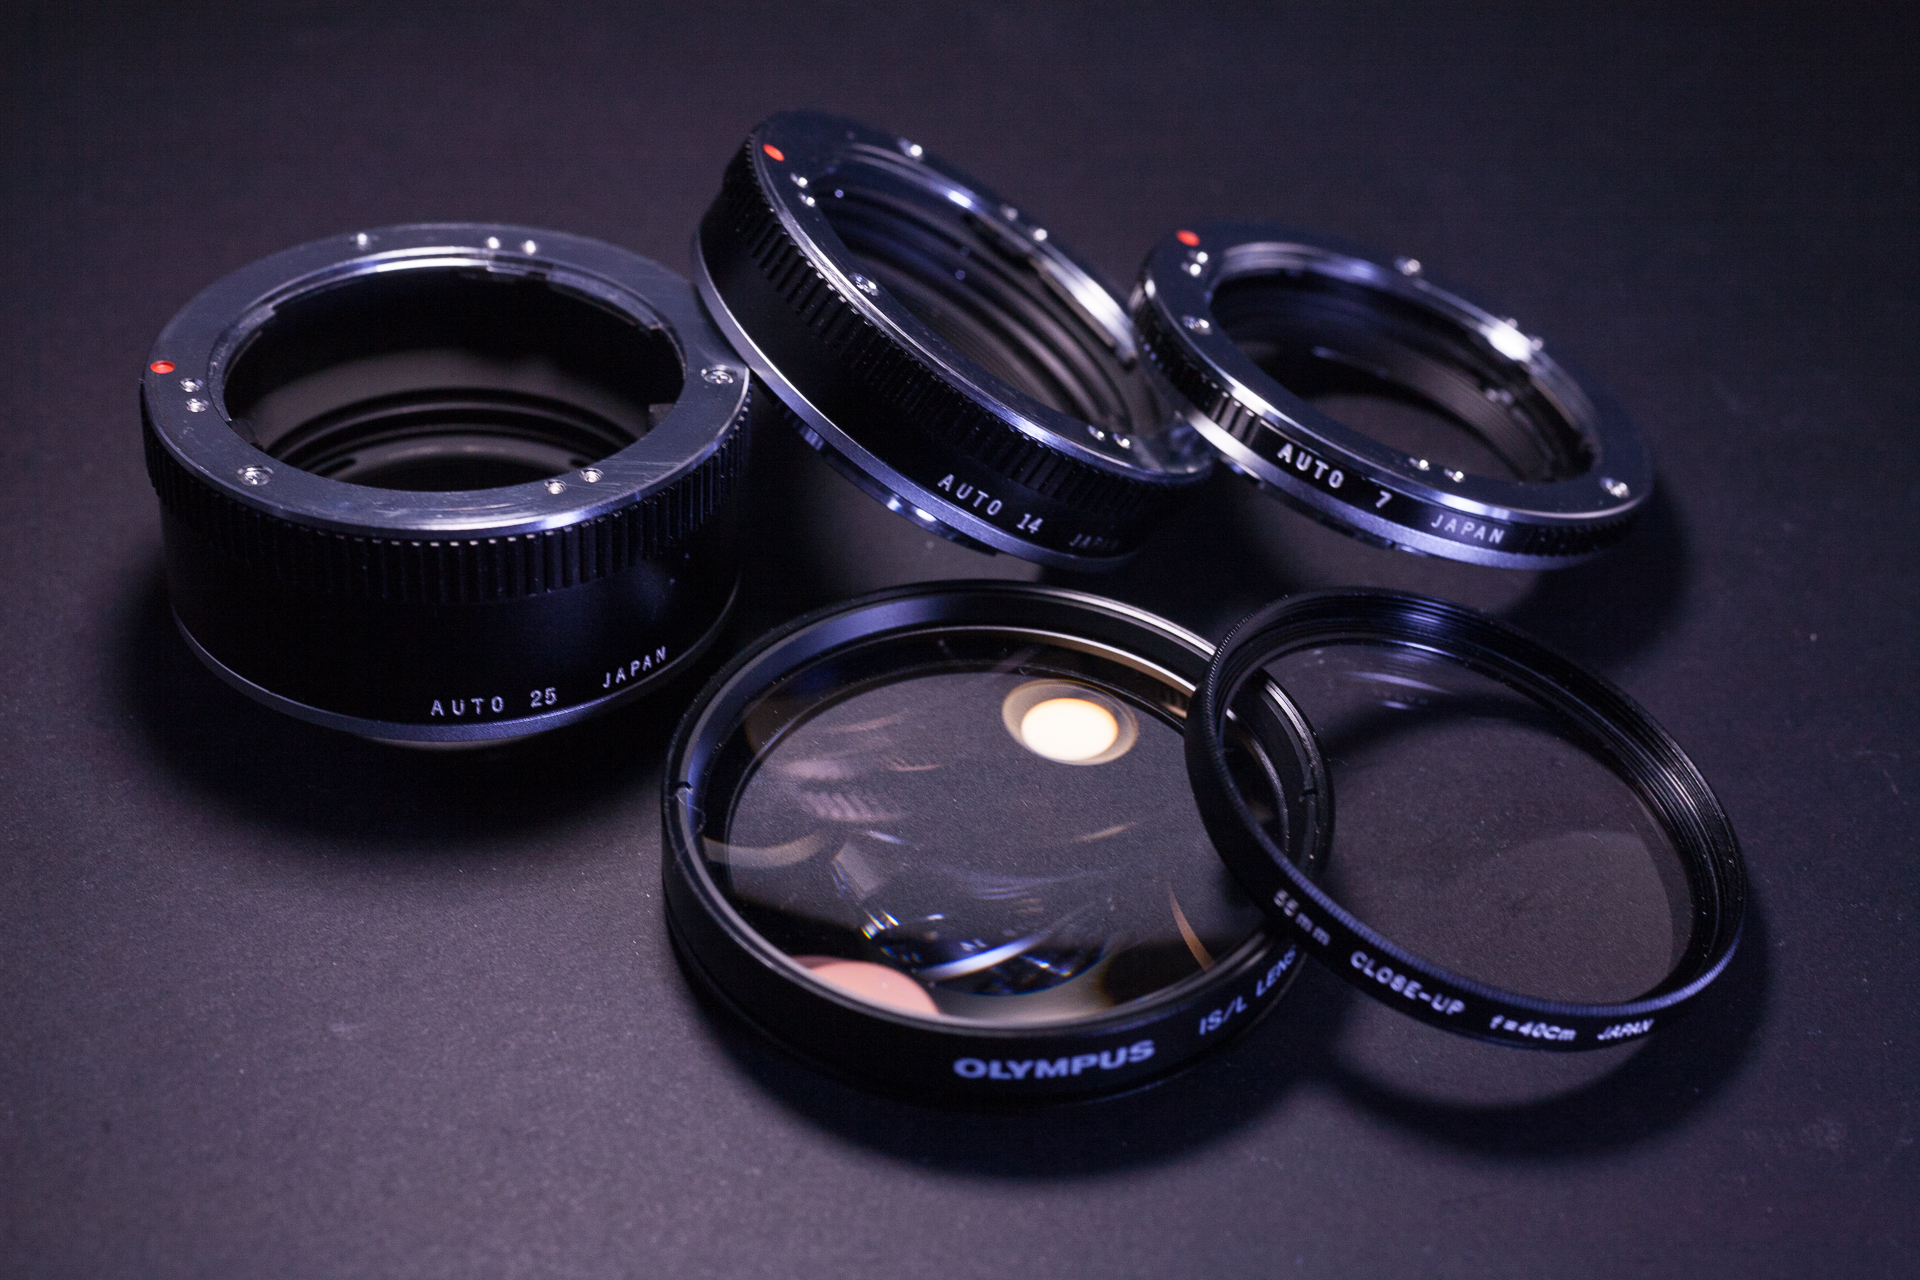 Extension tubes and close-up filters